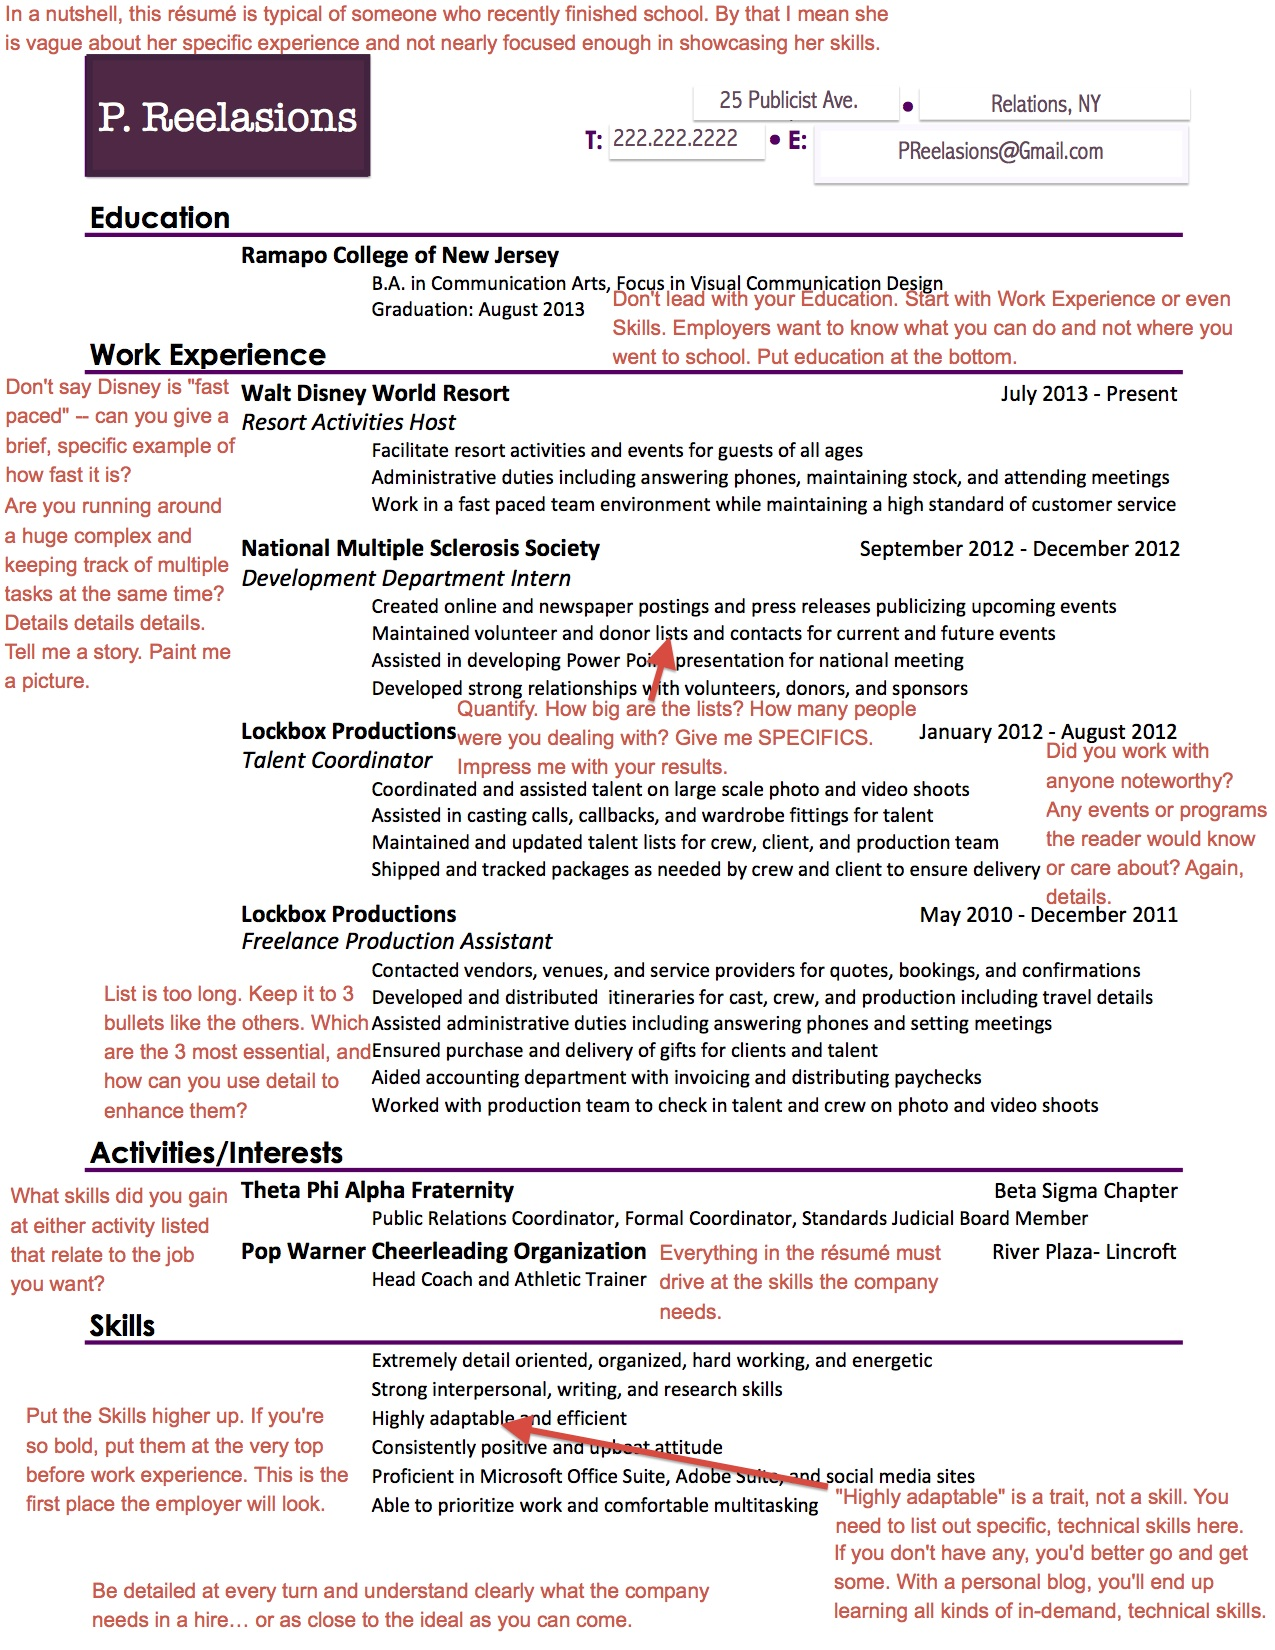 resume How Long Do Employers Look At Resumes what employers are looking for on your pr aftercollege p reelasions resume jpeg